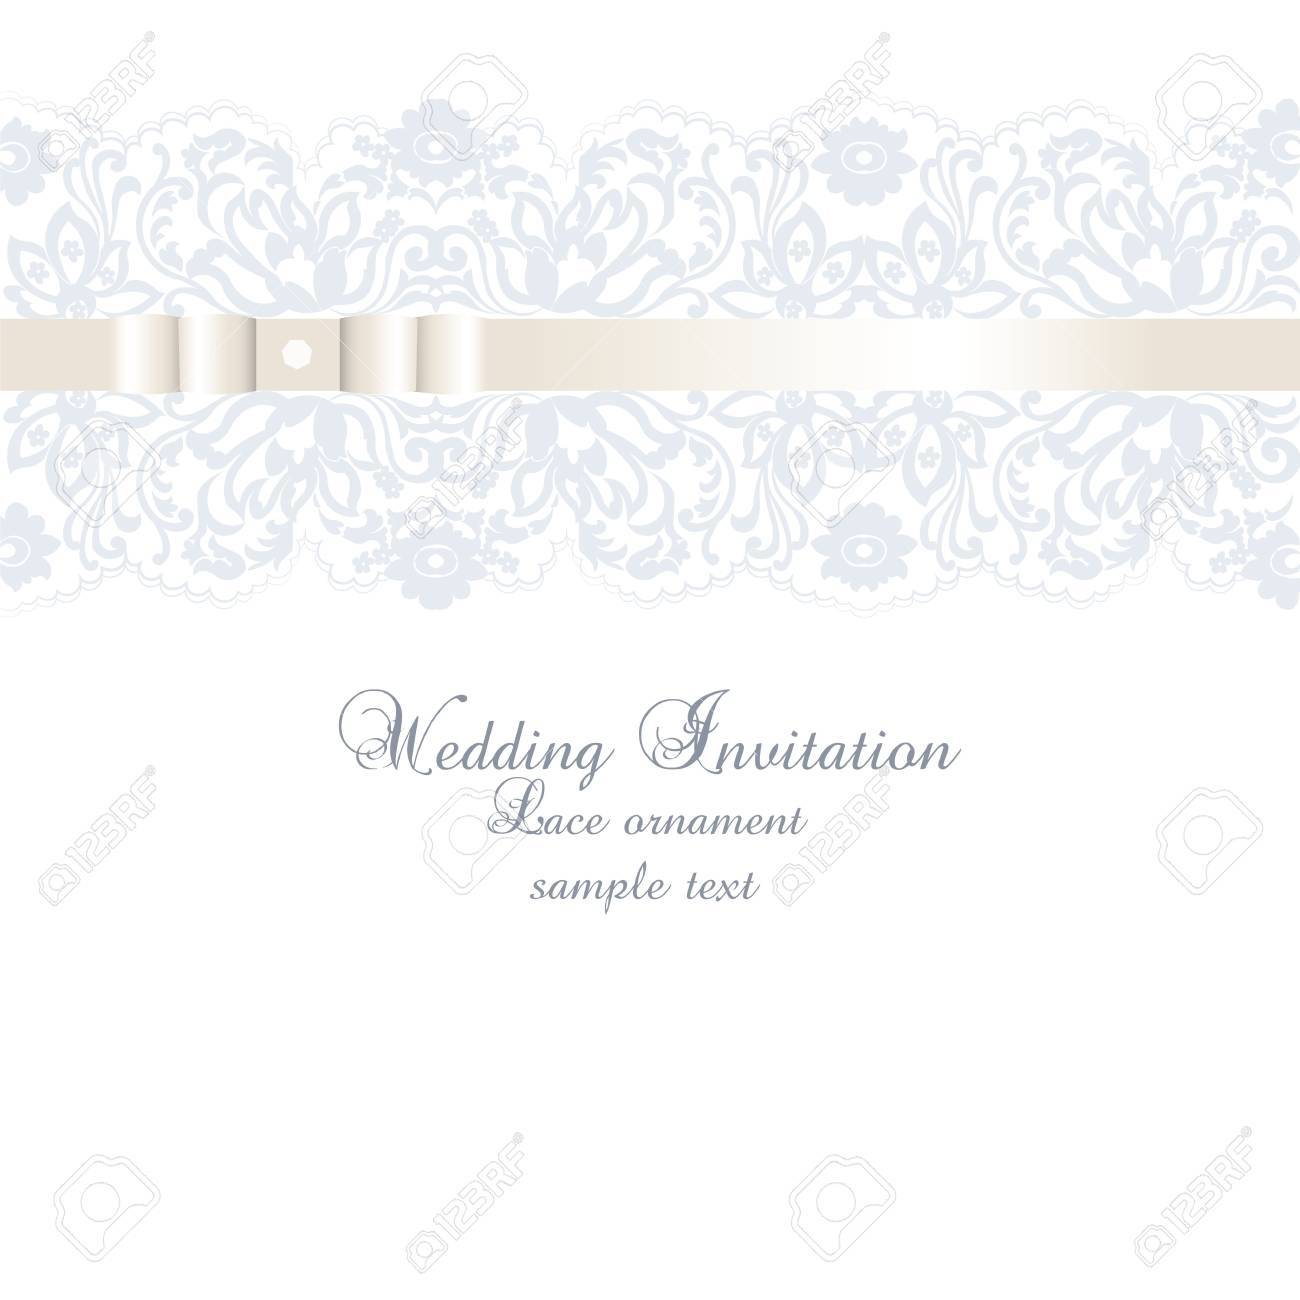 Vector Wedding Invitation Card With Lace Floral Ornament. Delicate ...